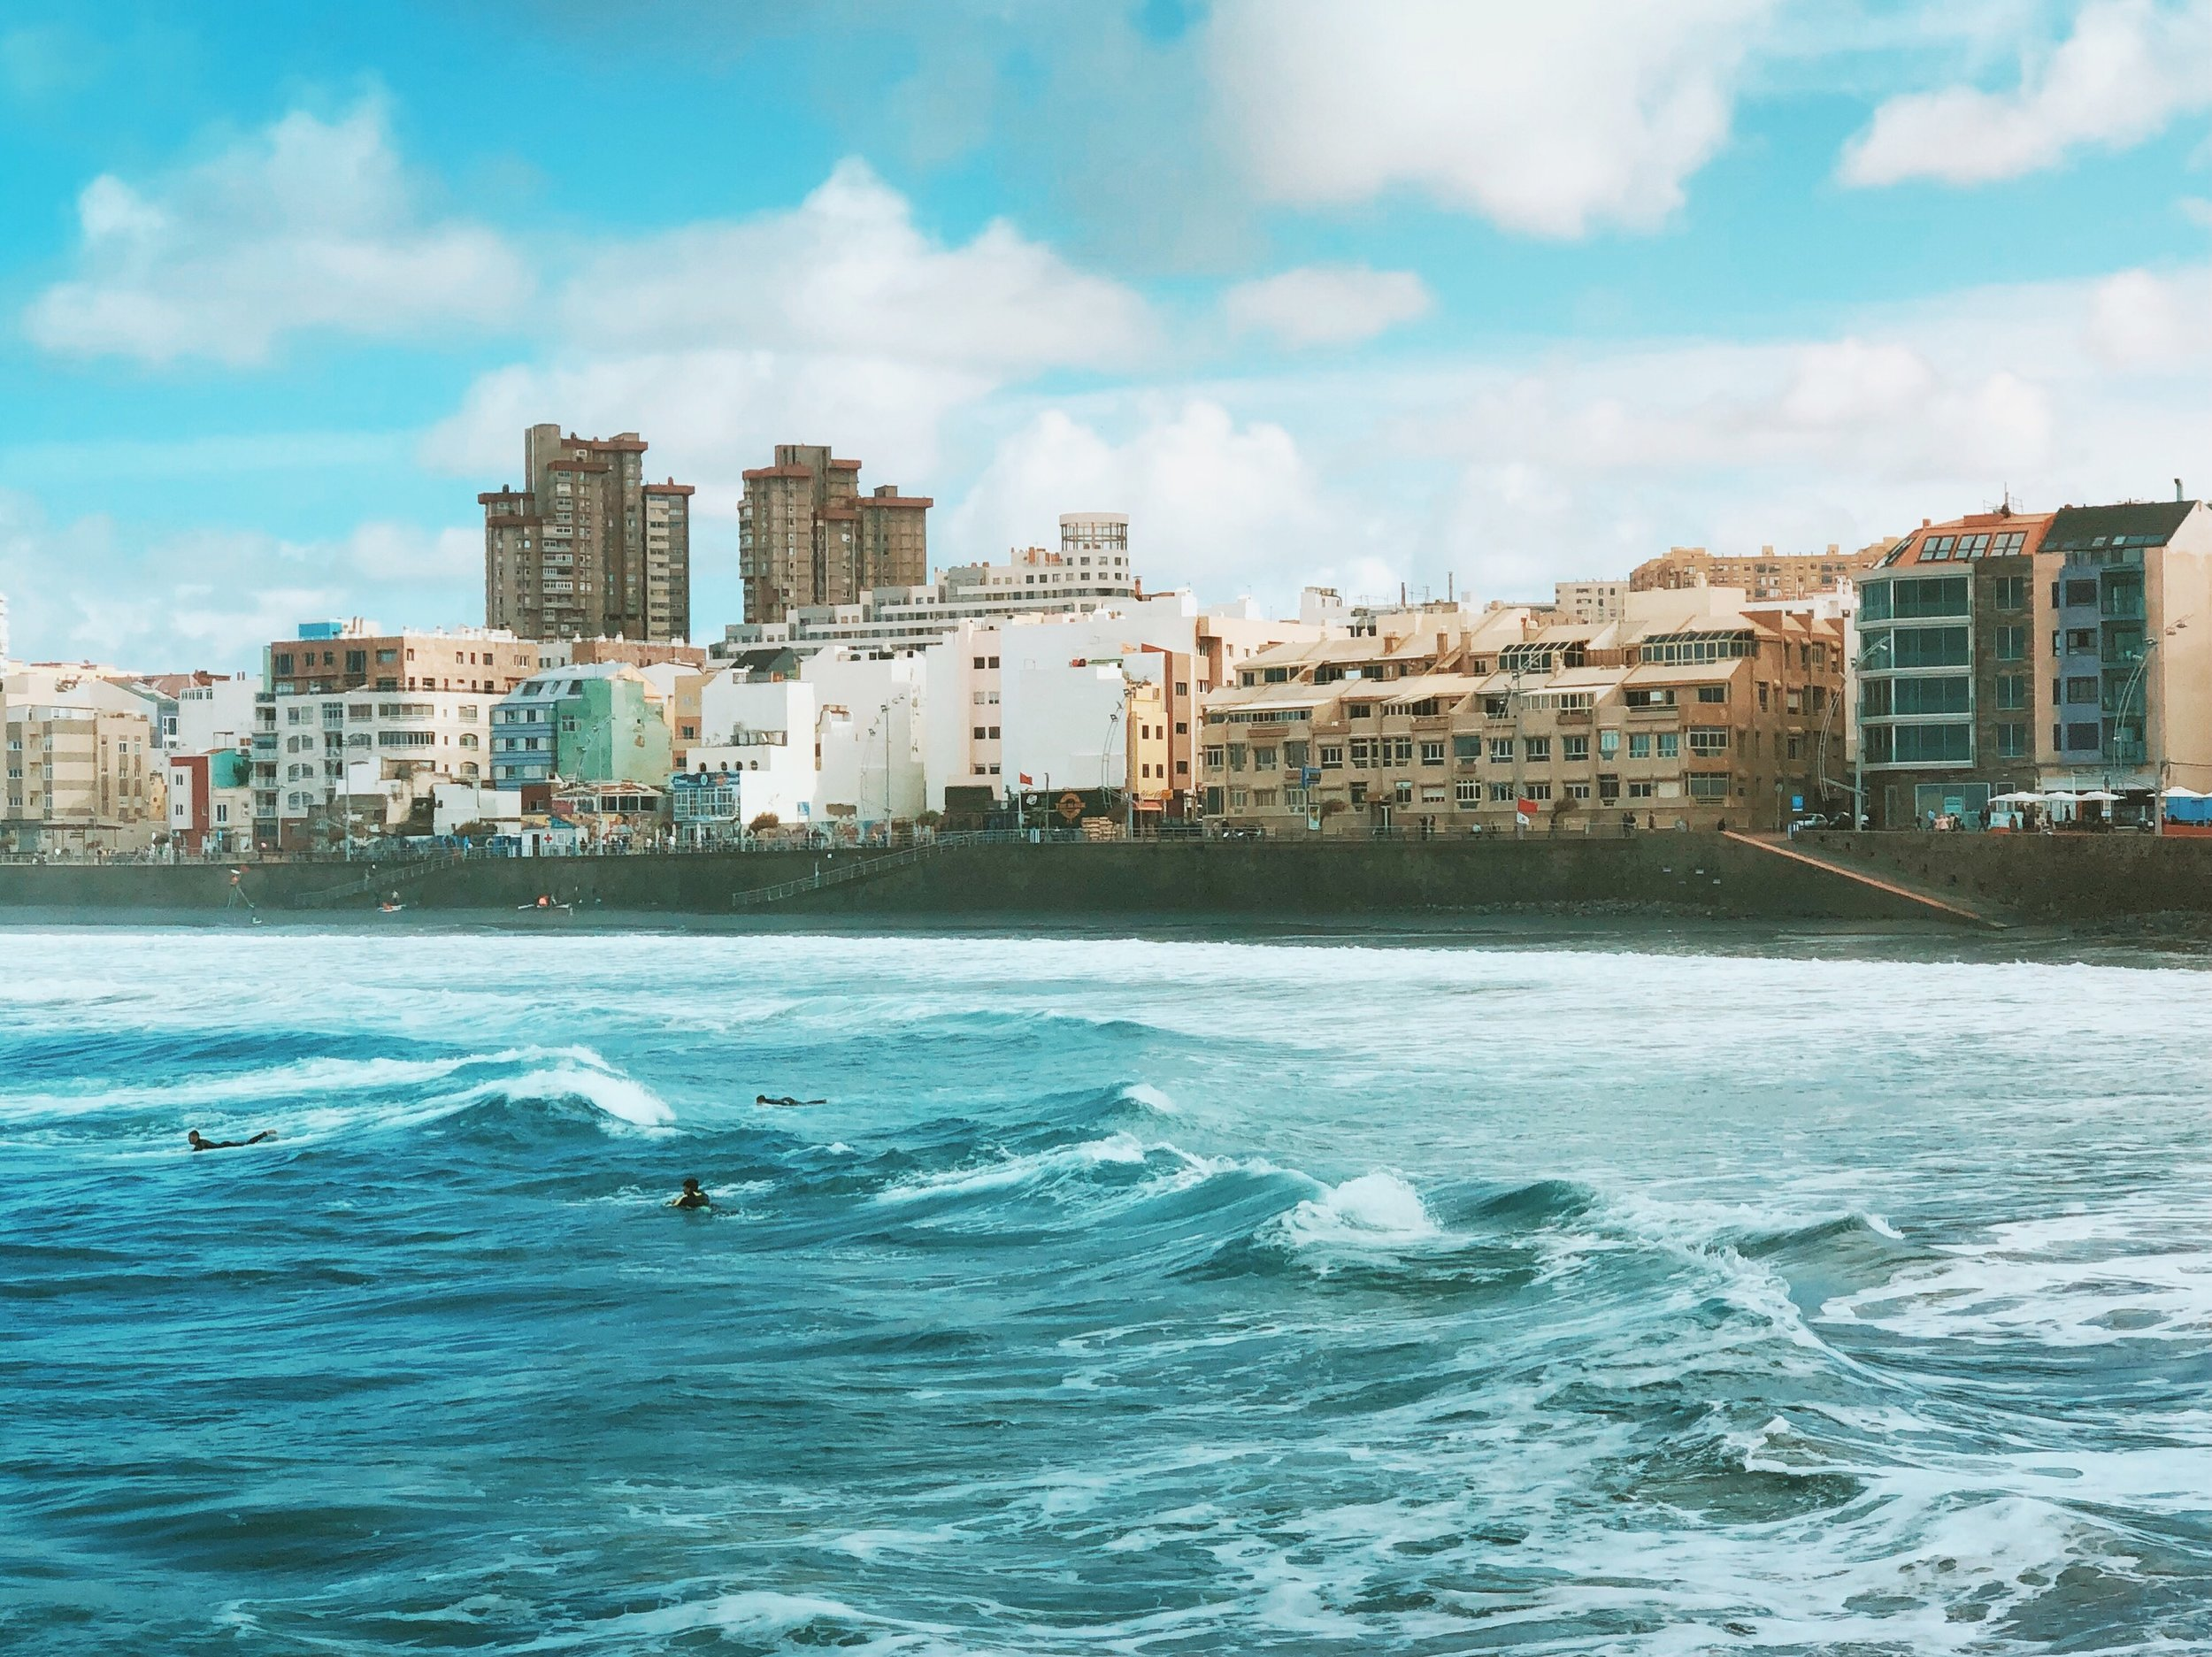 Surf's up - at Las Canteras